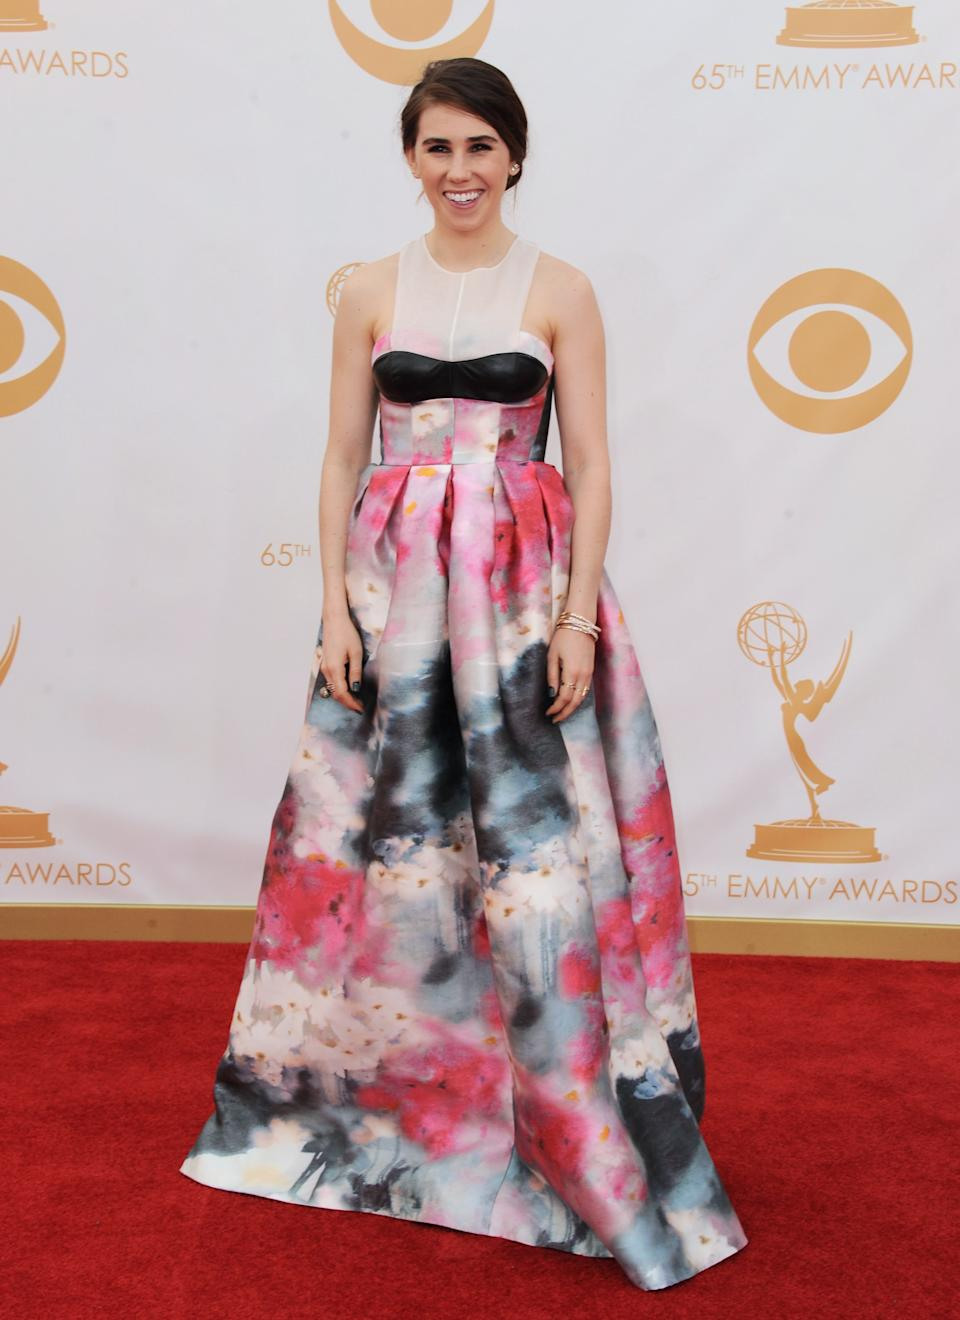 Zosia Mamet, wearing Honor, arrives at the 65th Primetime Emmy Awards at Nokia Theatre on Sunday, Sept. 22, 2013, in Los Angeles. (Photo by Jordan Strauss/Invision/AP)